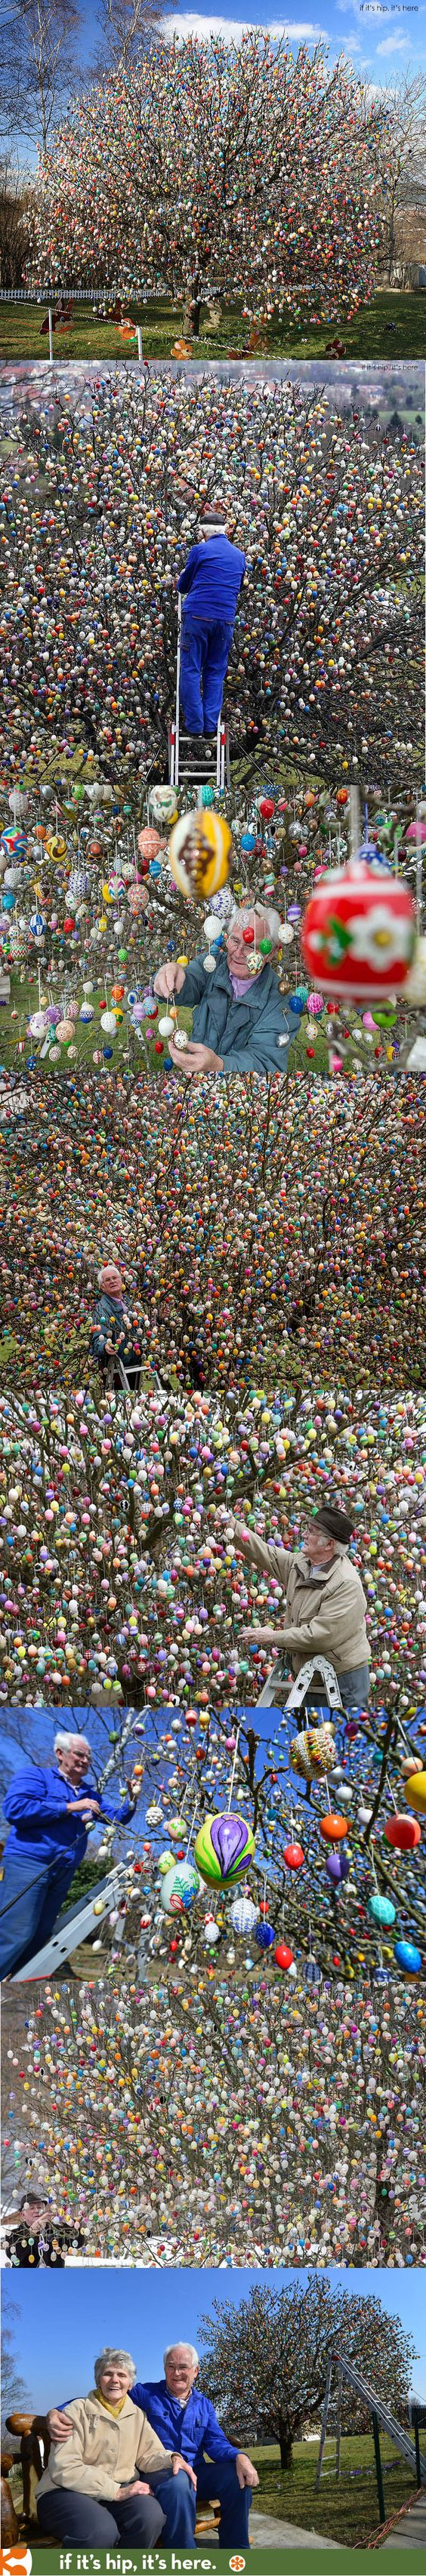 The Easter Egg Tree. This German Couple has been decorating their apple tree with up to 10,000 eggs for the past 50 years. 2015 is the last year they will honor this old tradition. Learn more at http://www.ifitshipitshere.com/2015-volker-kraft-easter-egg-tree/: